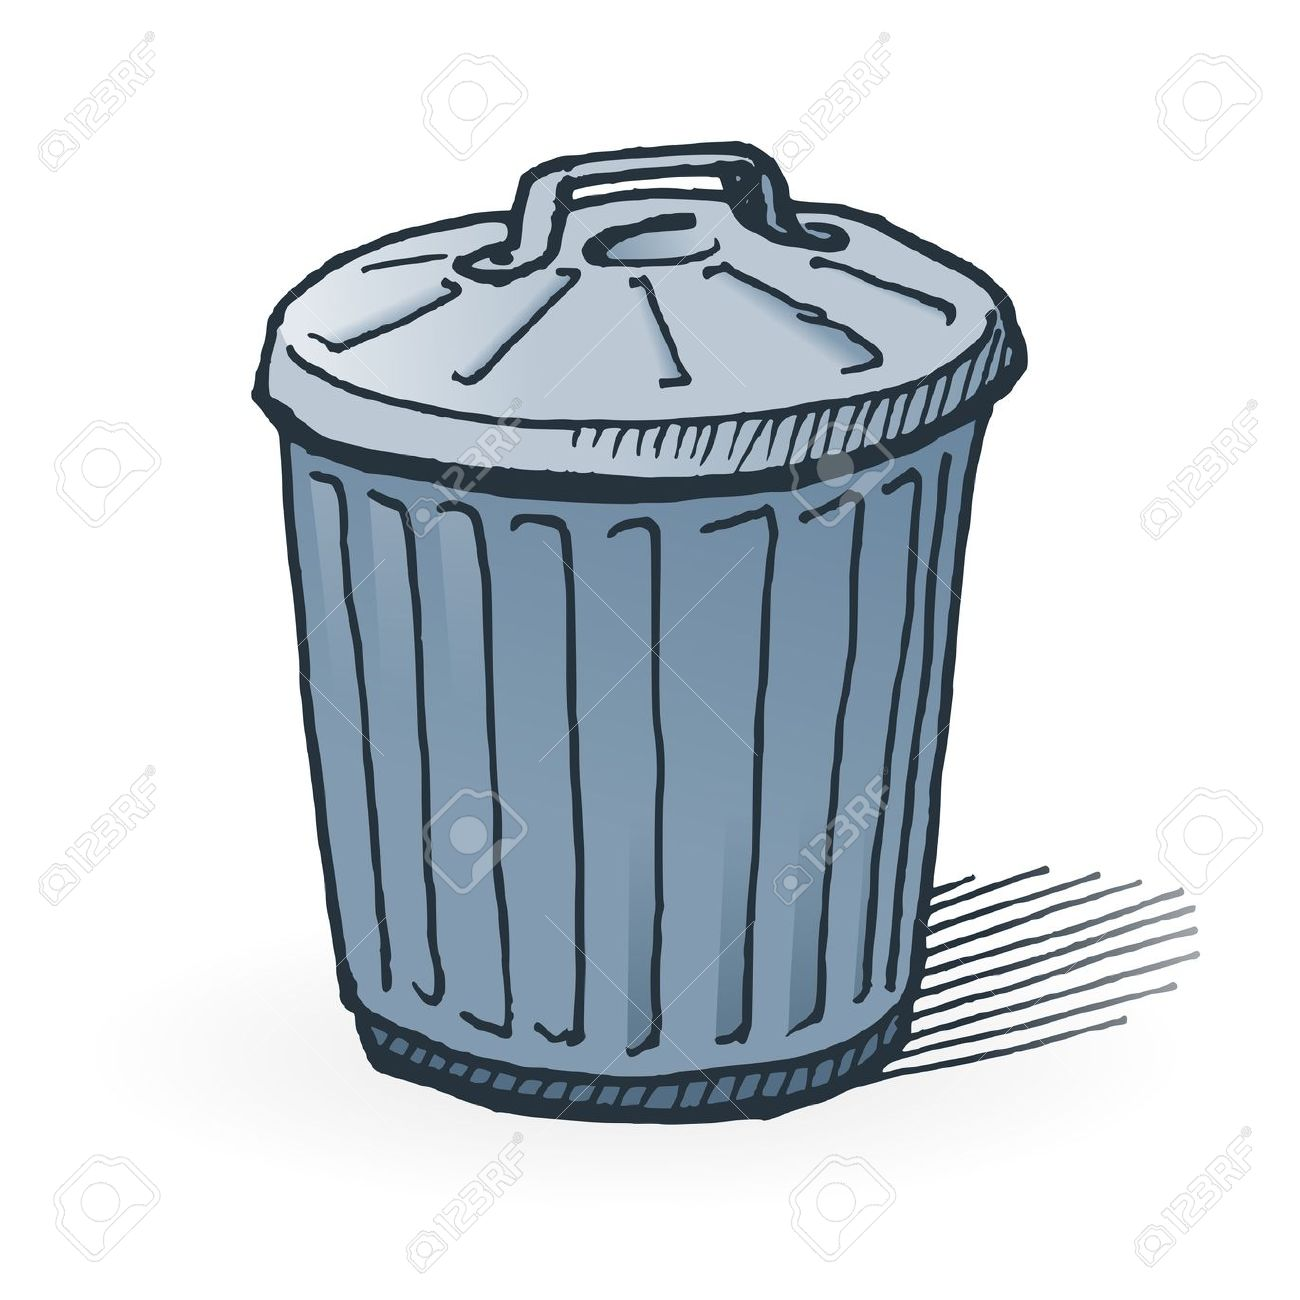 Pictures Of Trash Cans | Free download best Pictures Of Trash Cans ...